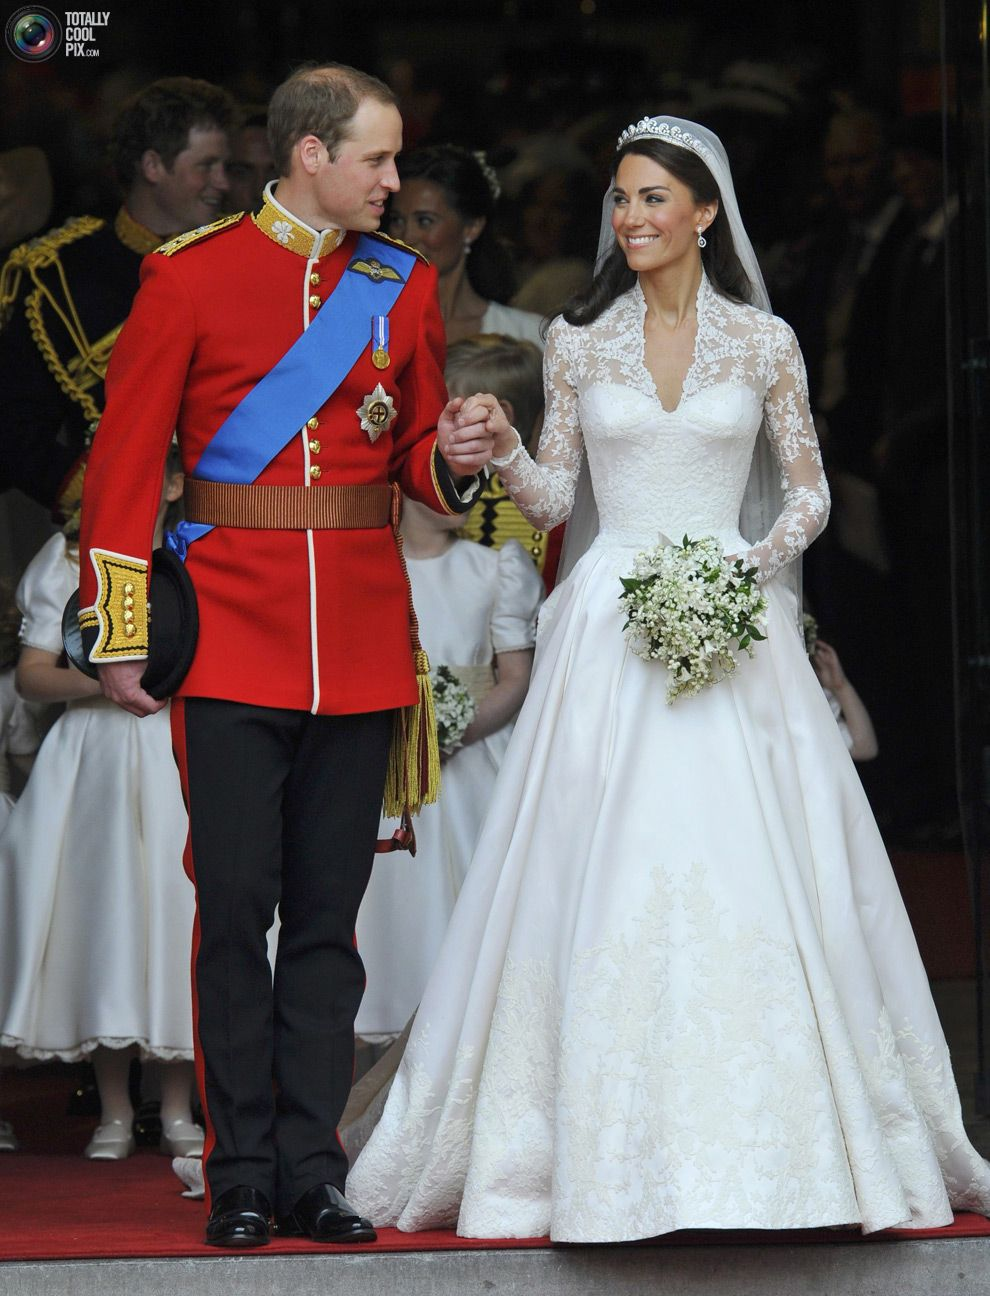 william and kate - Google Search | Royals! ❤ | Pinterest | Royal ...